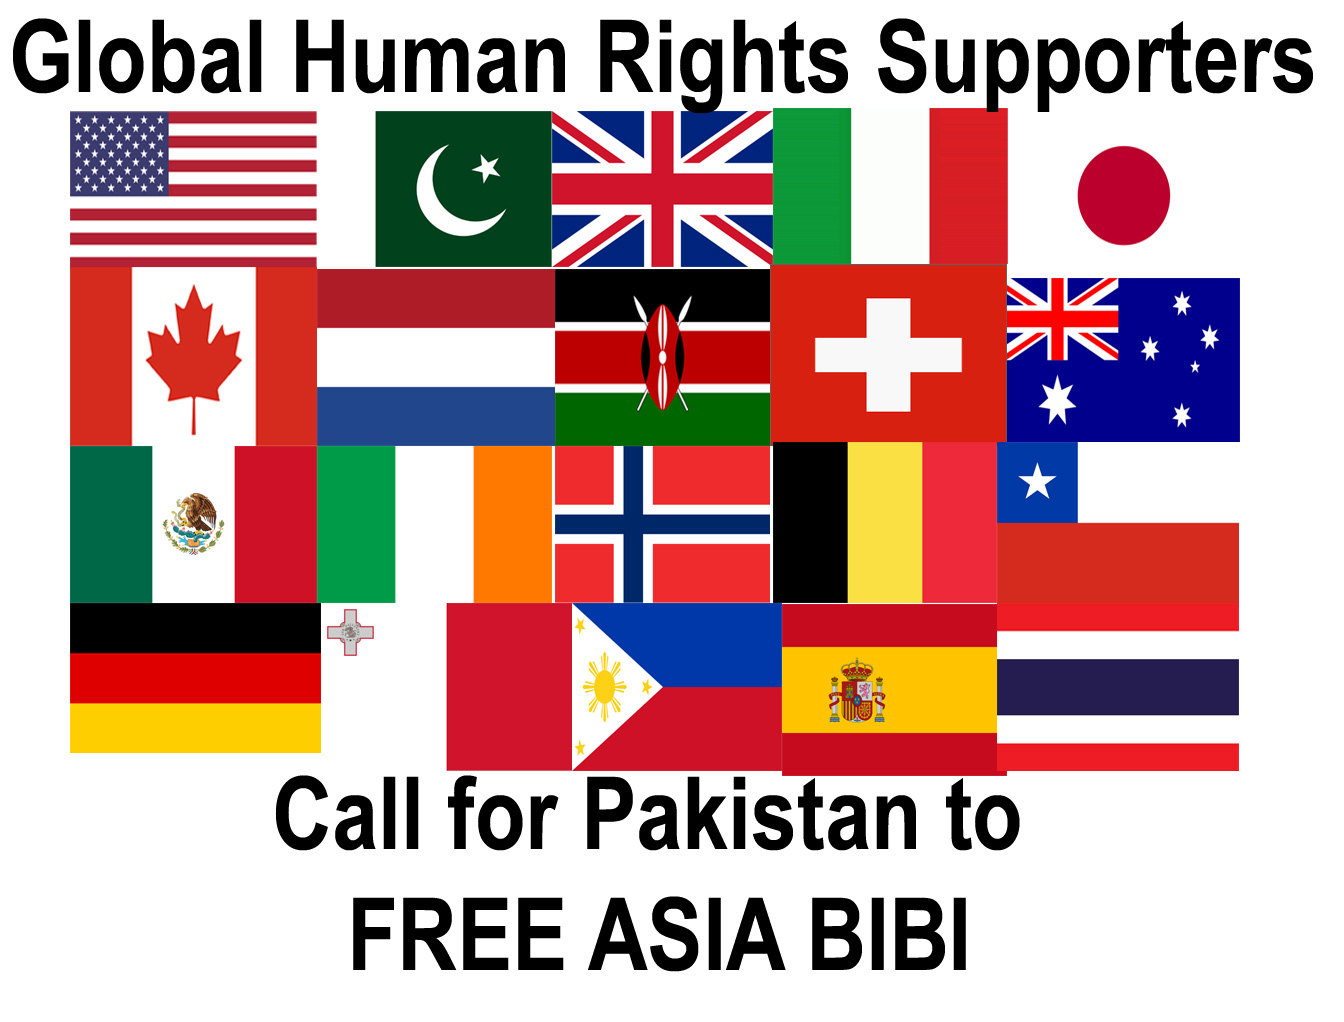 Global Human Rights Supporters Call for Freedom of Pakistan